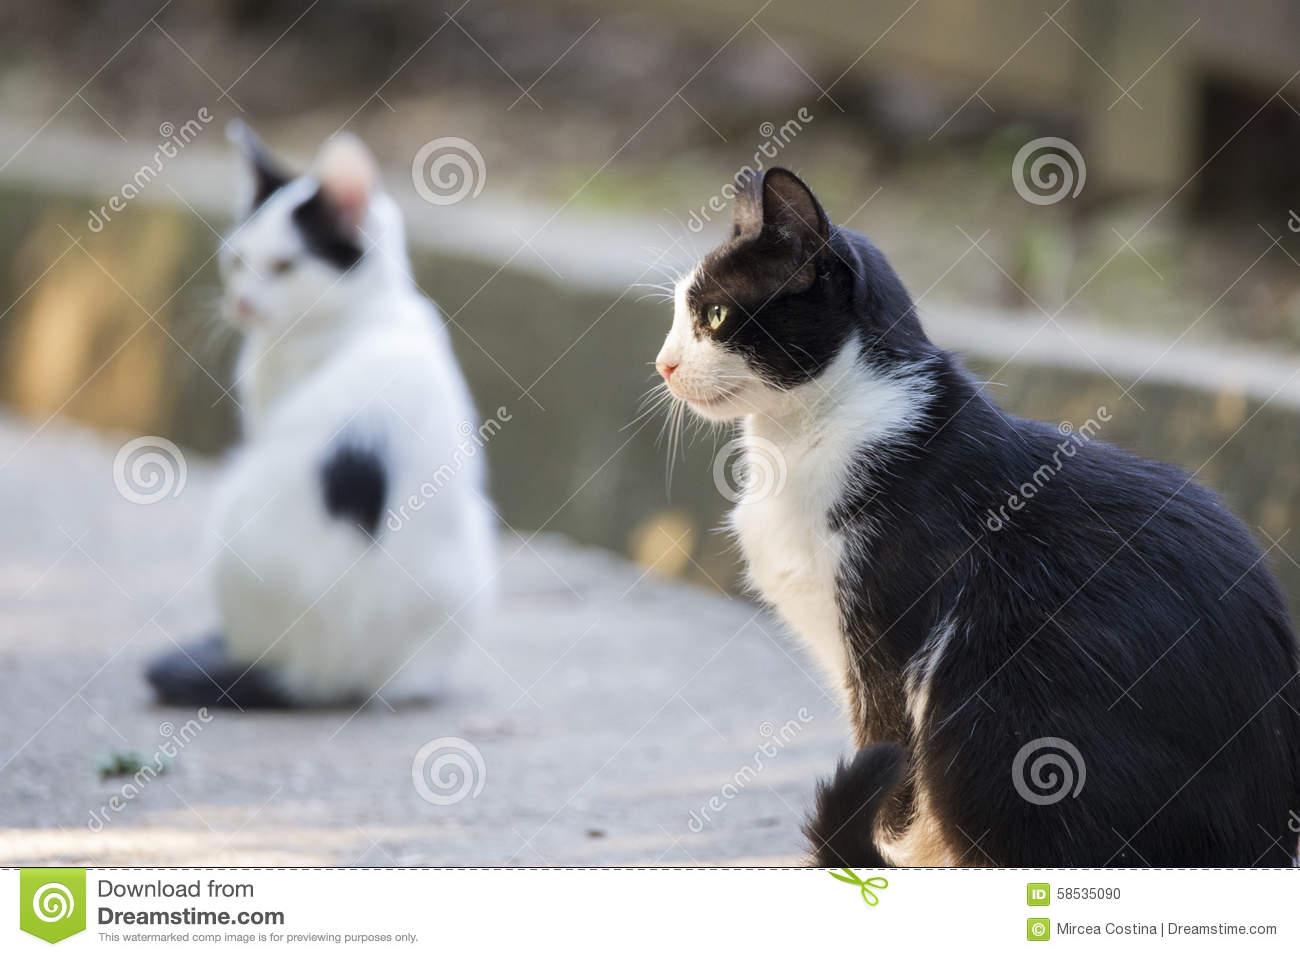 Cats Stock Photo - Image: 58535090